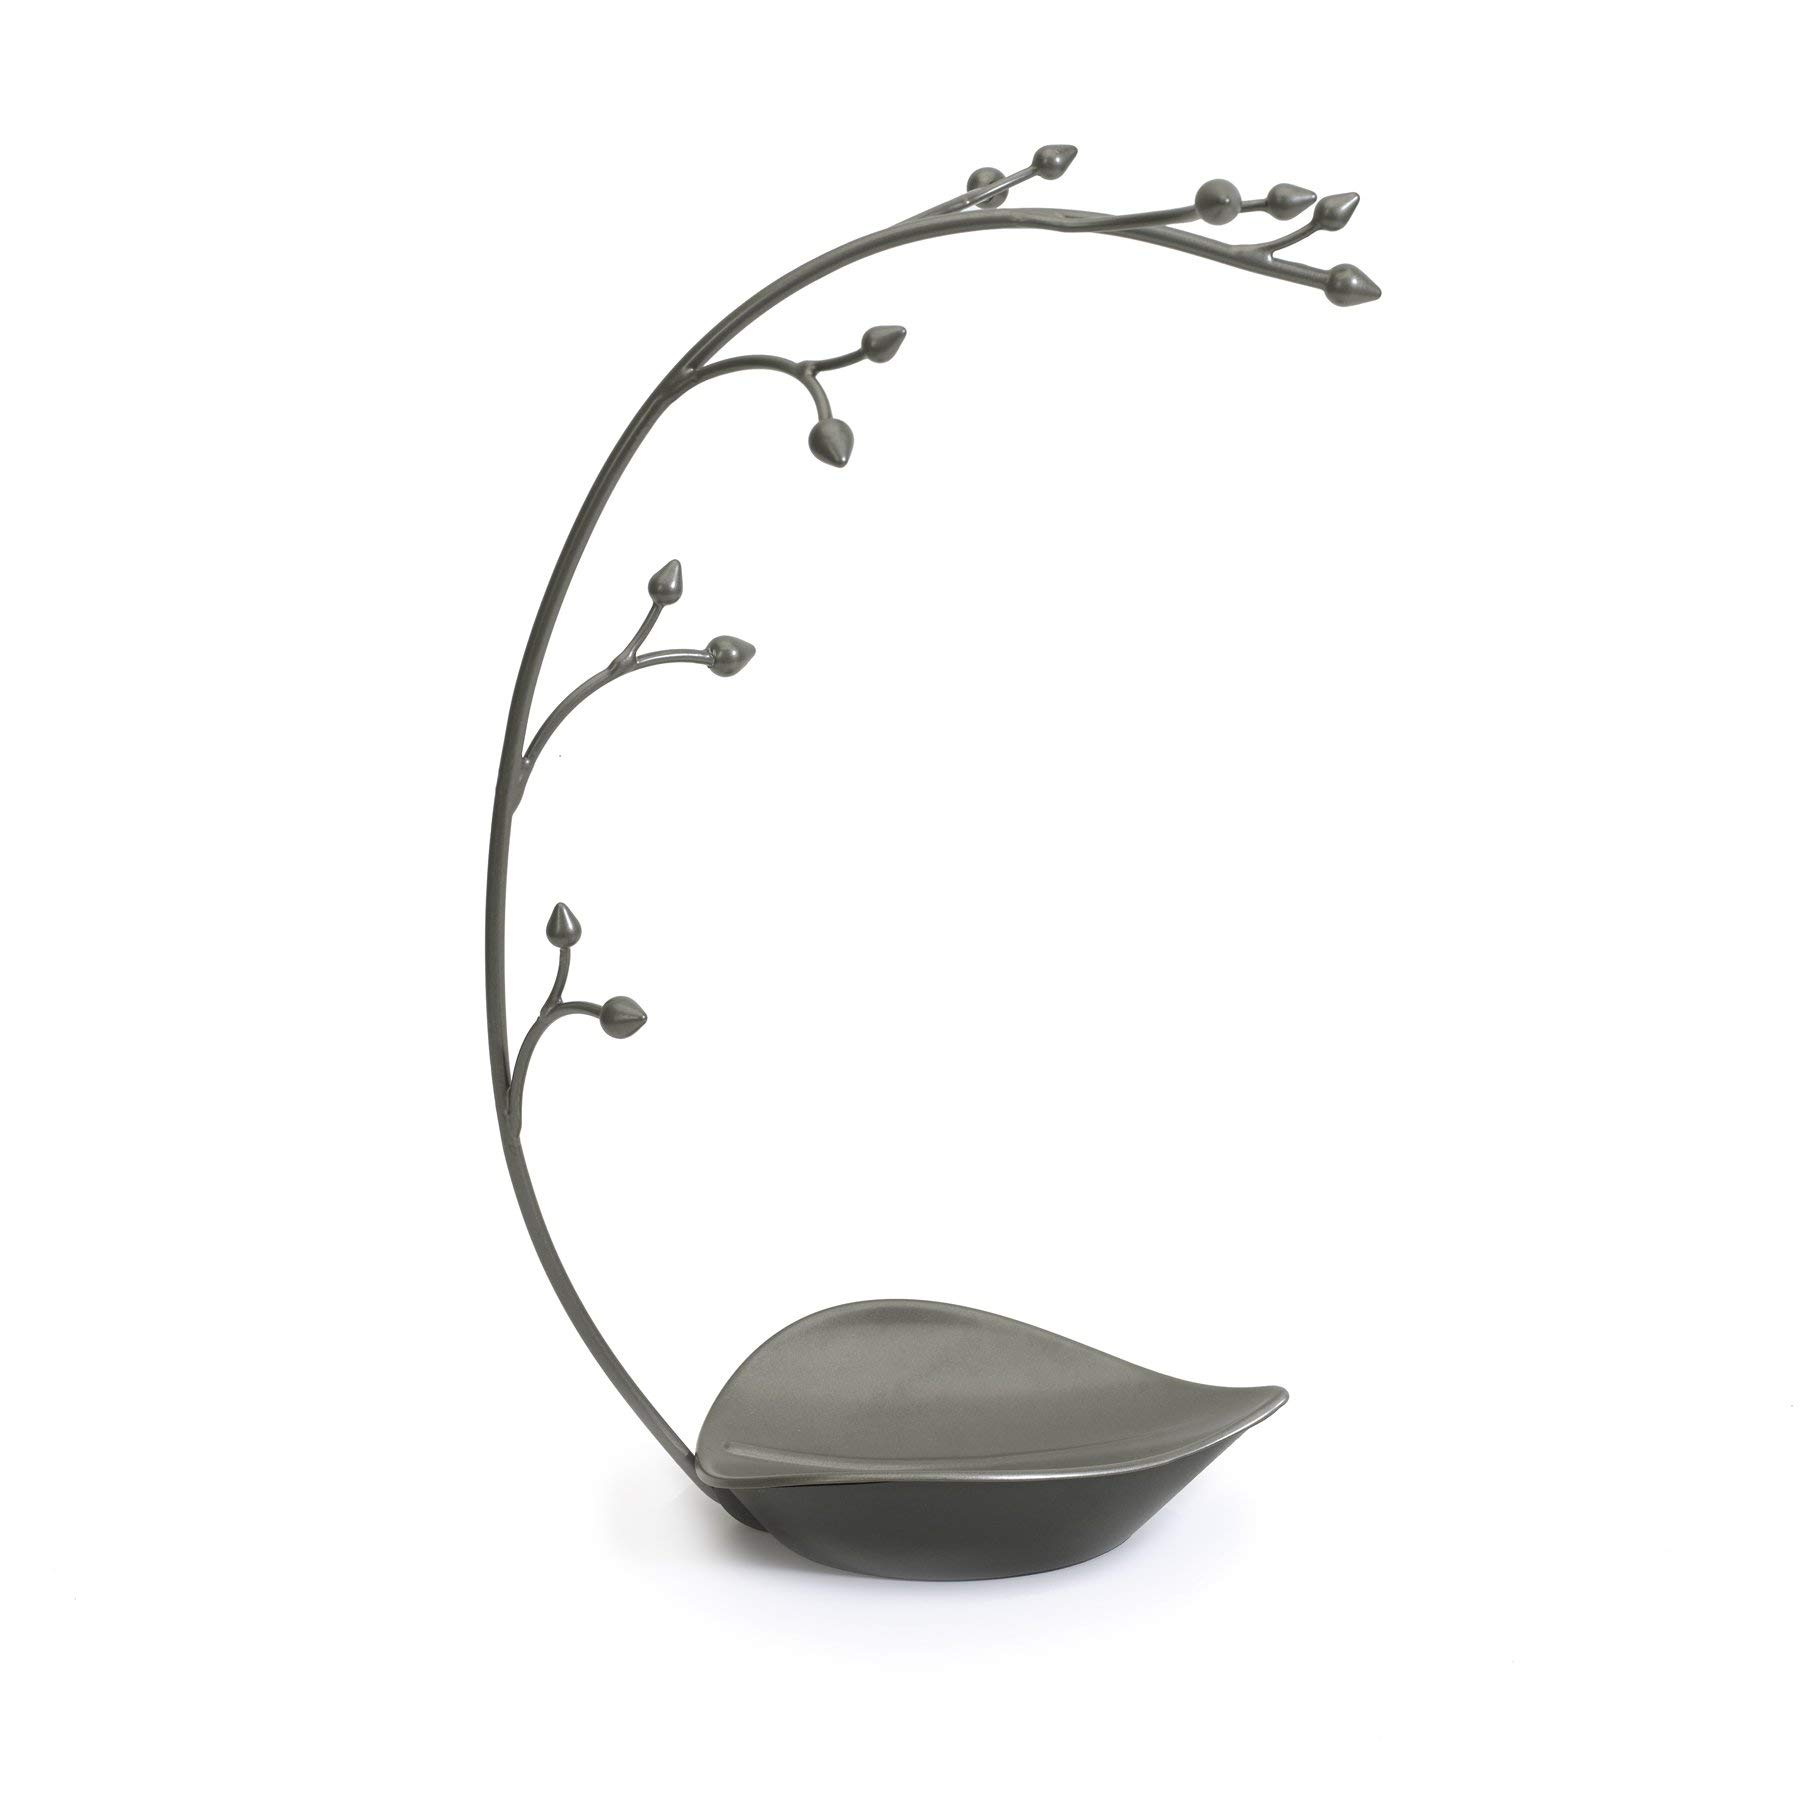 Umbra Orchid Jewelry Hanging Tree Stand - Multi-Functional Necklace Metal Holder Display Organizer Rack With a Ring Dish Tray - Great For Organization - Can Be Used As Decor, Dining Room Centerpiece by Umbra